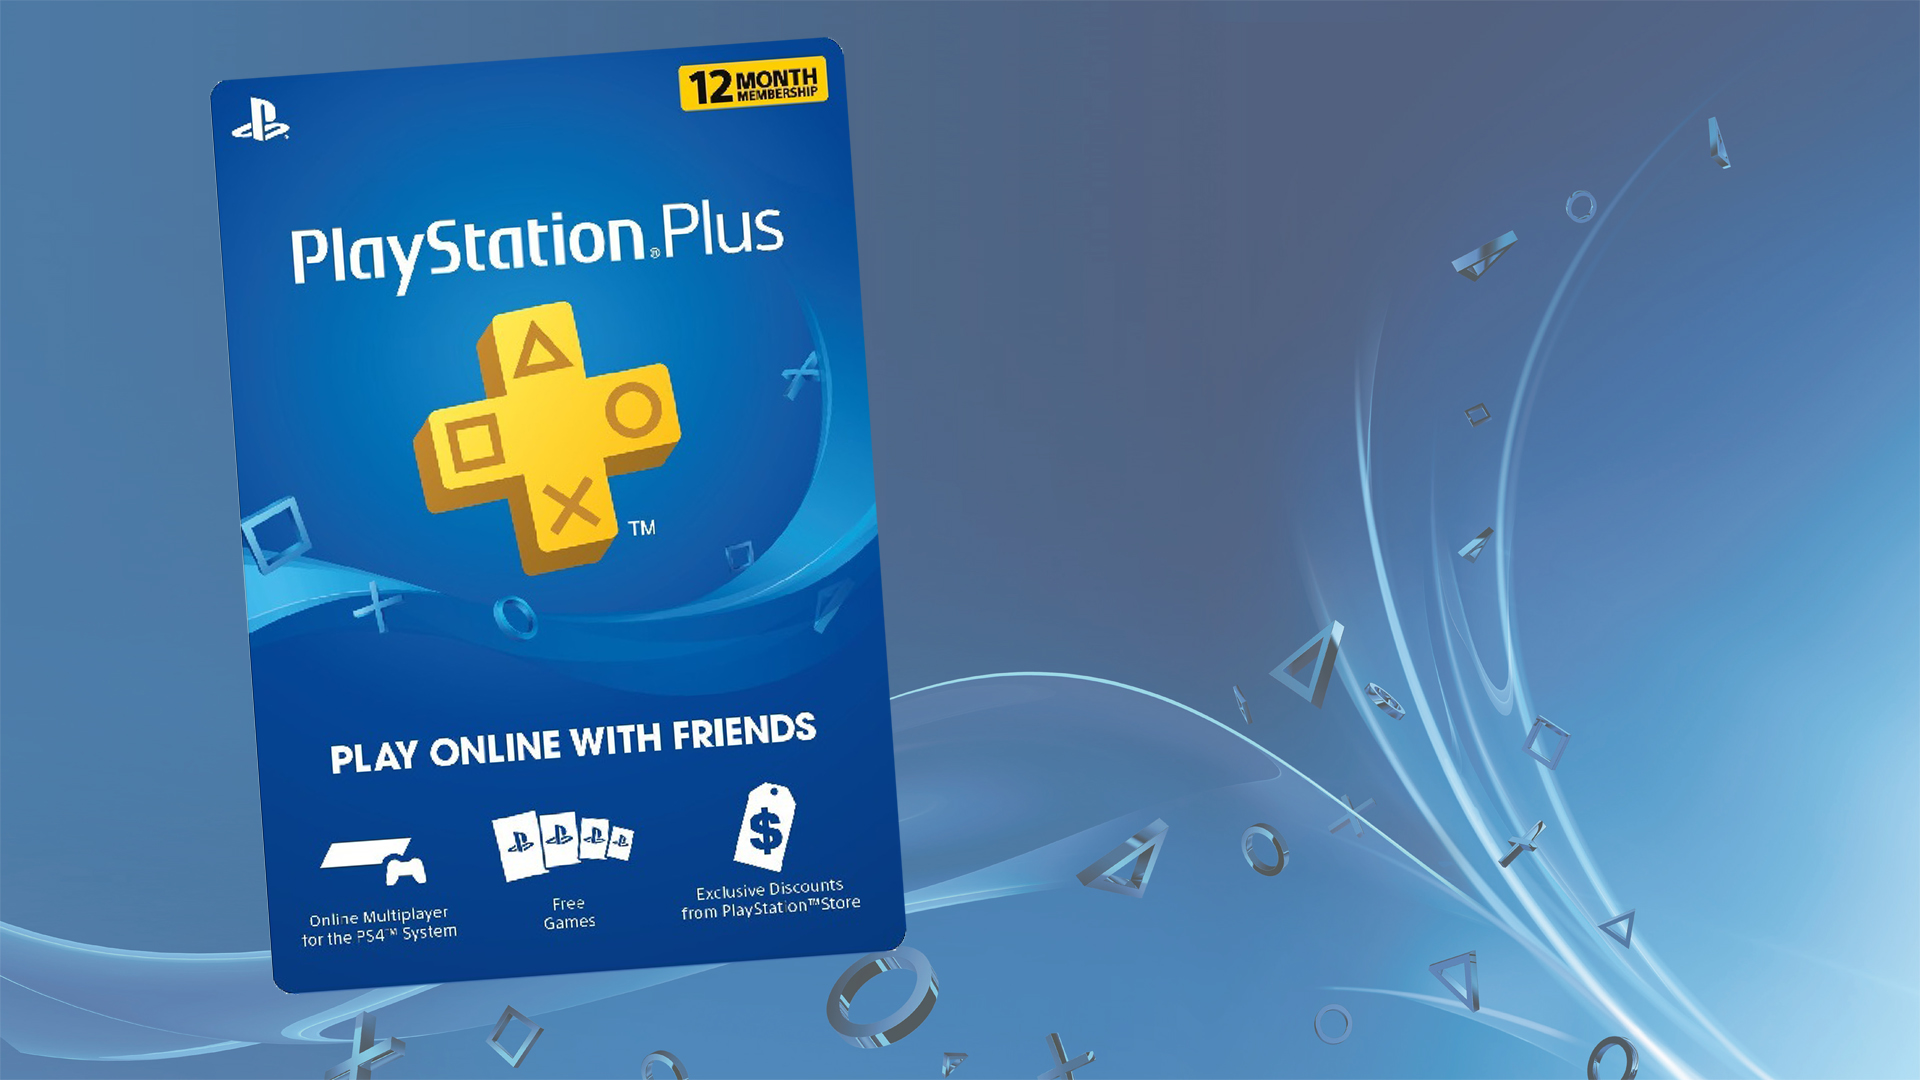 Get More Playstation Plus For Less 12 And 3 Month Subscriptions 4 Pro Reg Eu Gamesradar